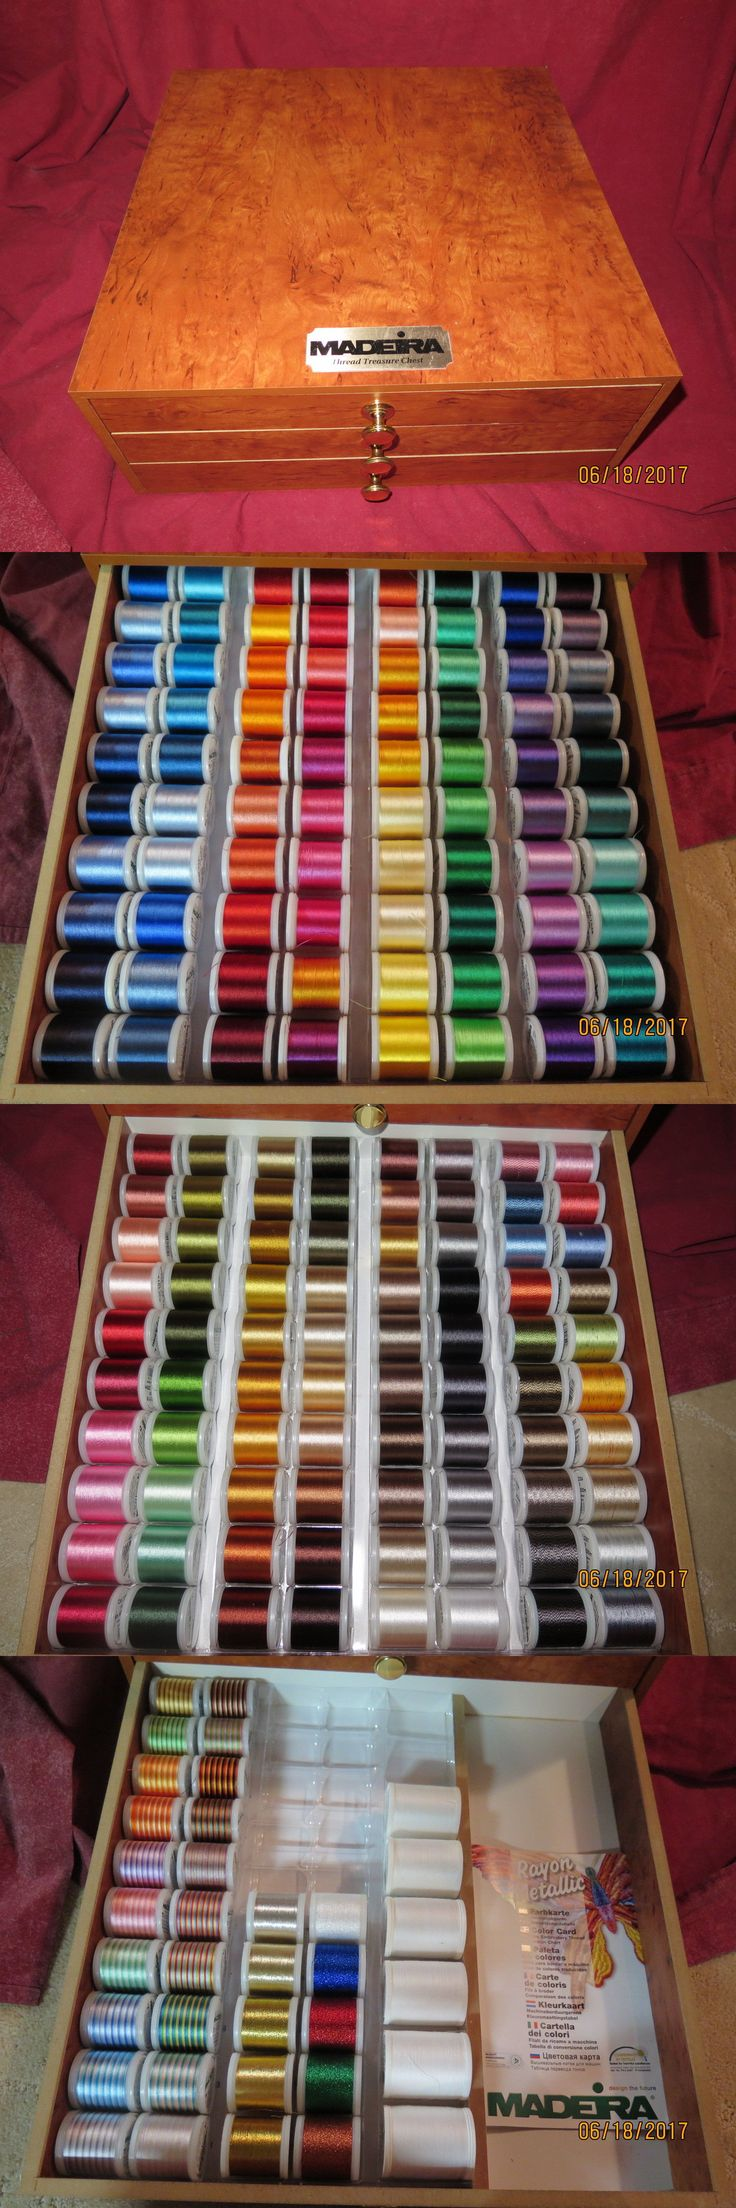 Oltre 25 fantastiche idee su madeira thread su pinterest machine bobbins and thread 83920 new madeira 190 spools rayon embroidery thread with chest jv9 nvjuhfo Image collections